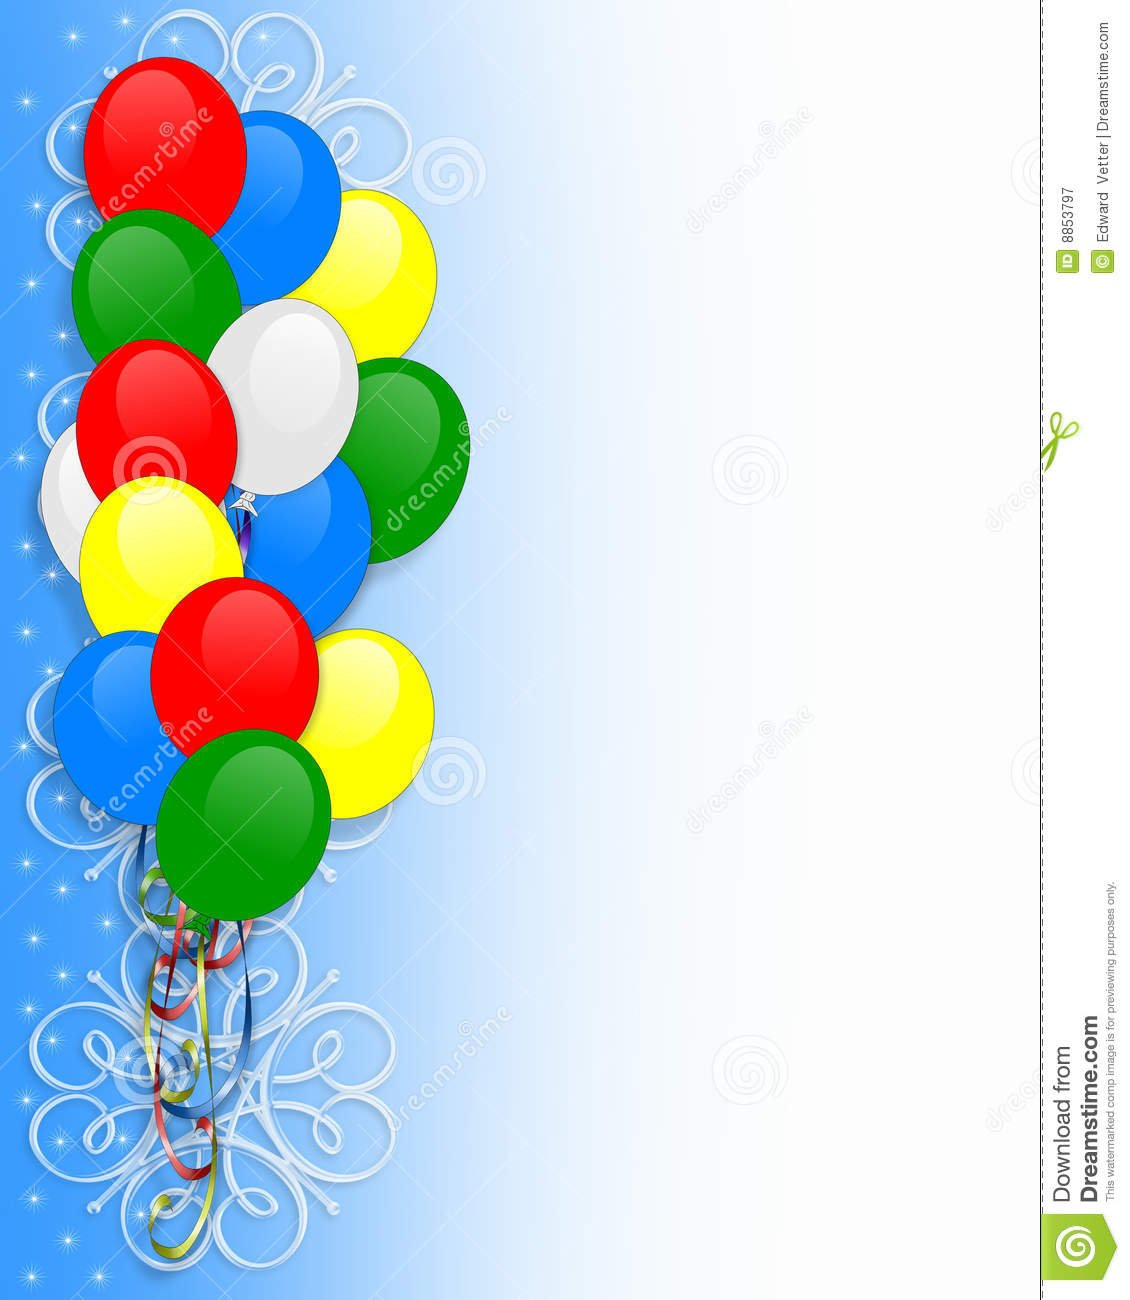 Birthday Invitation Balloons Border Stock Illustration